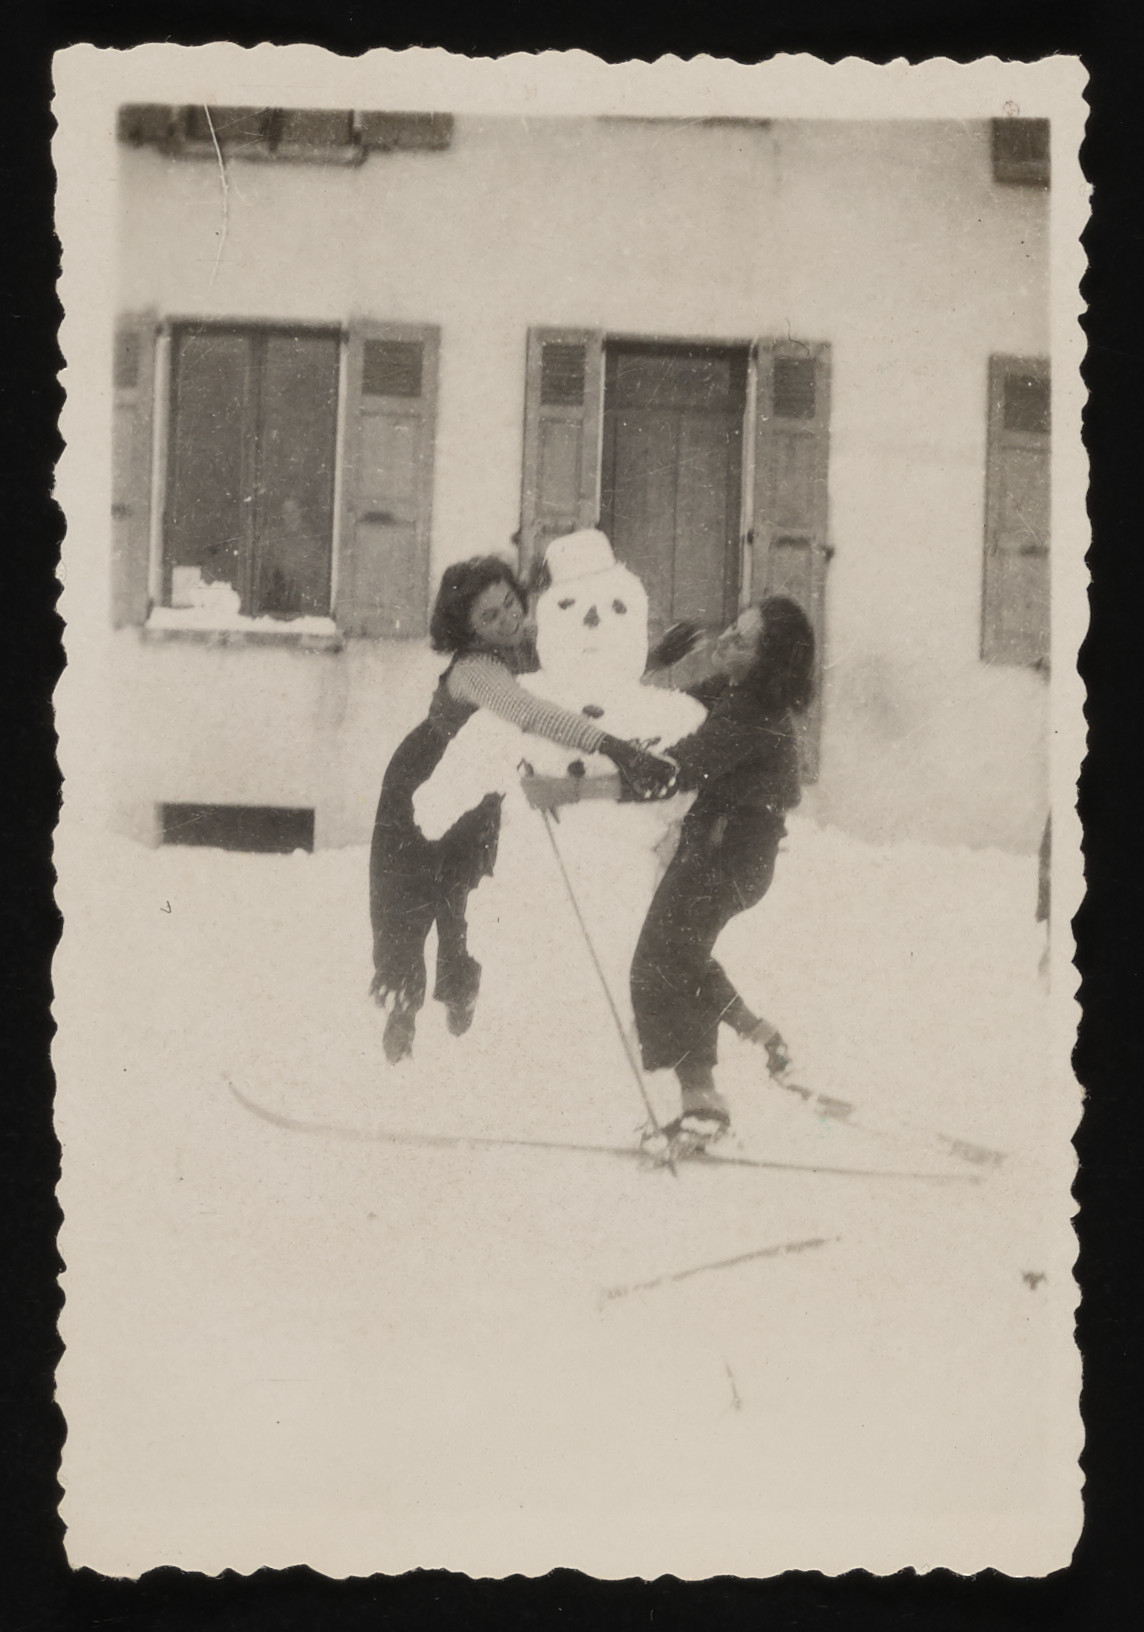 Two Jewish girls who are lhiding in Le Chambon build a snowman.  Pictured are Lili Braun (left) and Liesel Kaufmann (now Elizabeth Koeing, right).